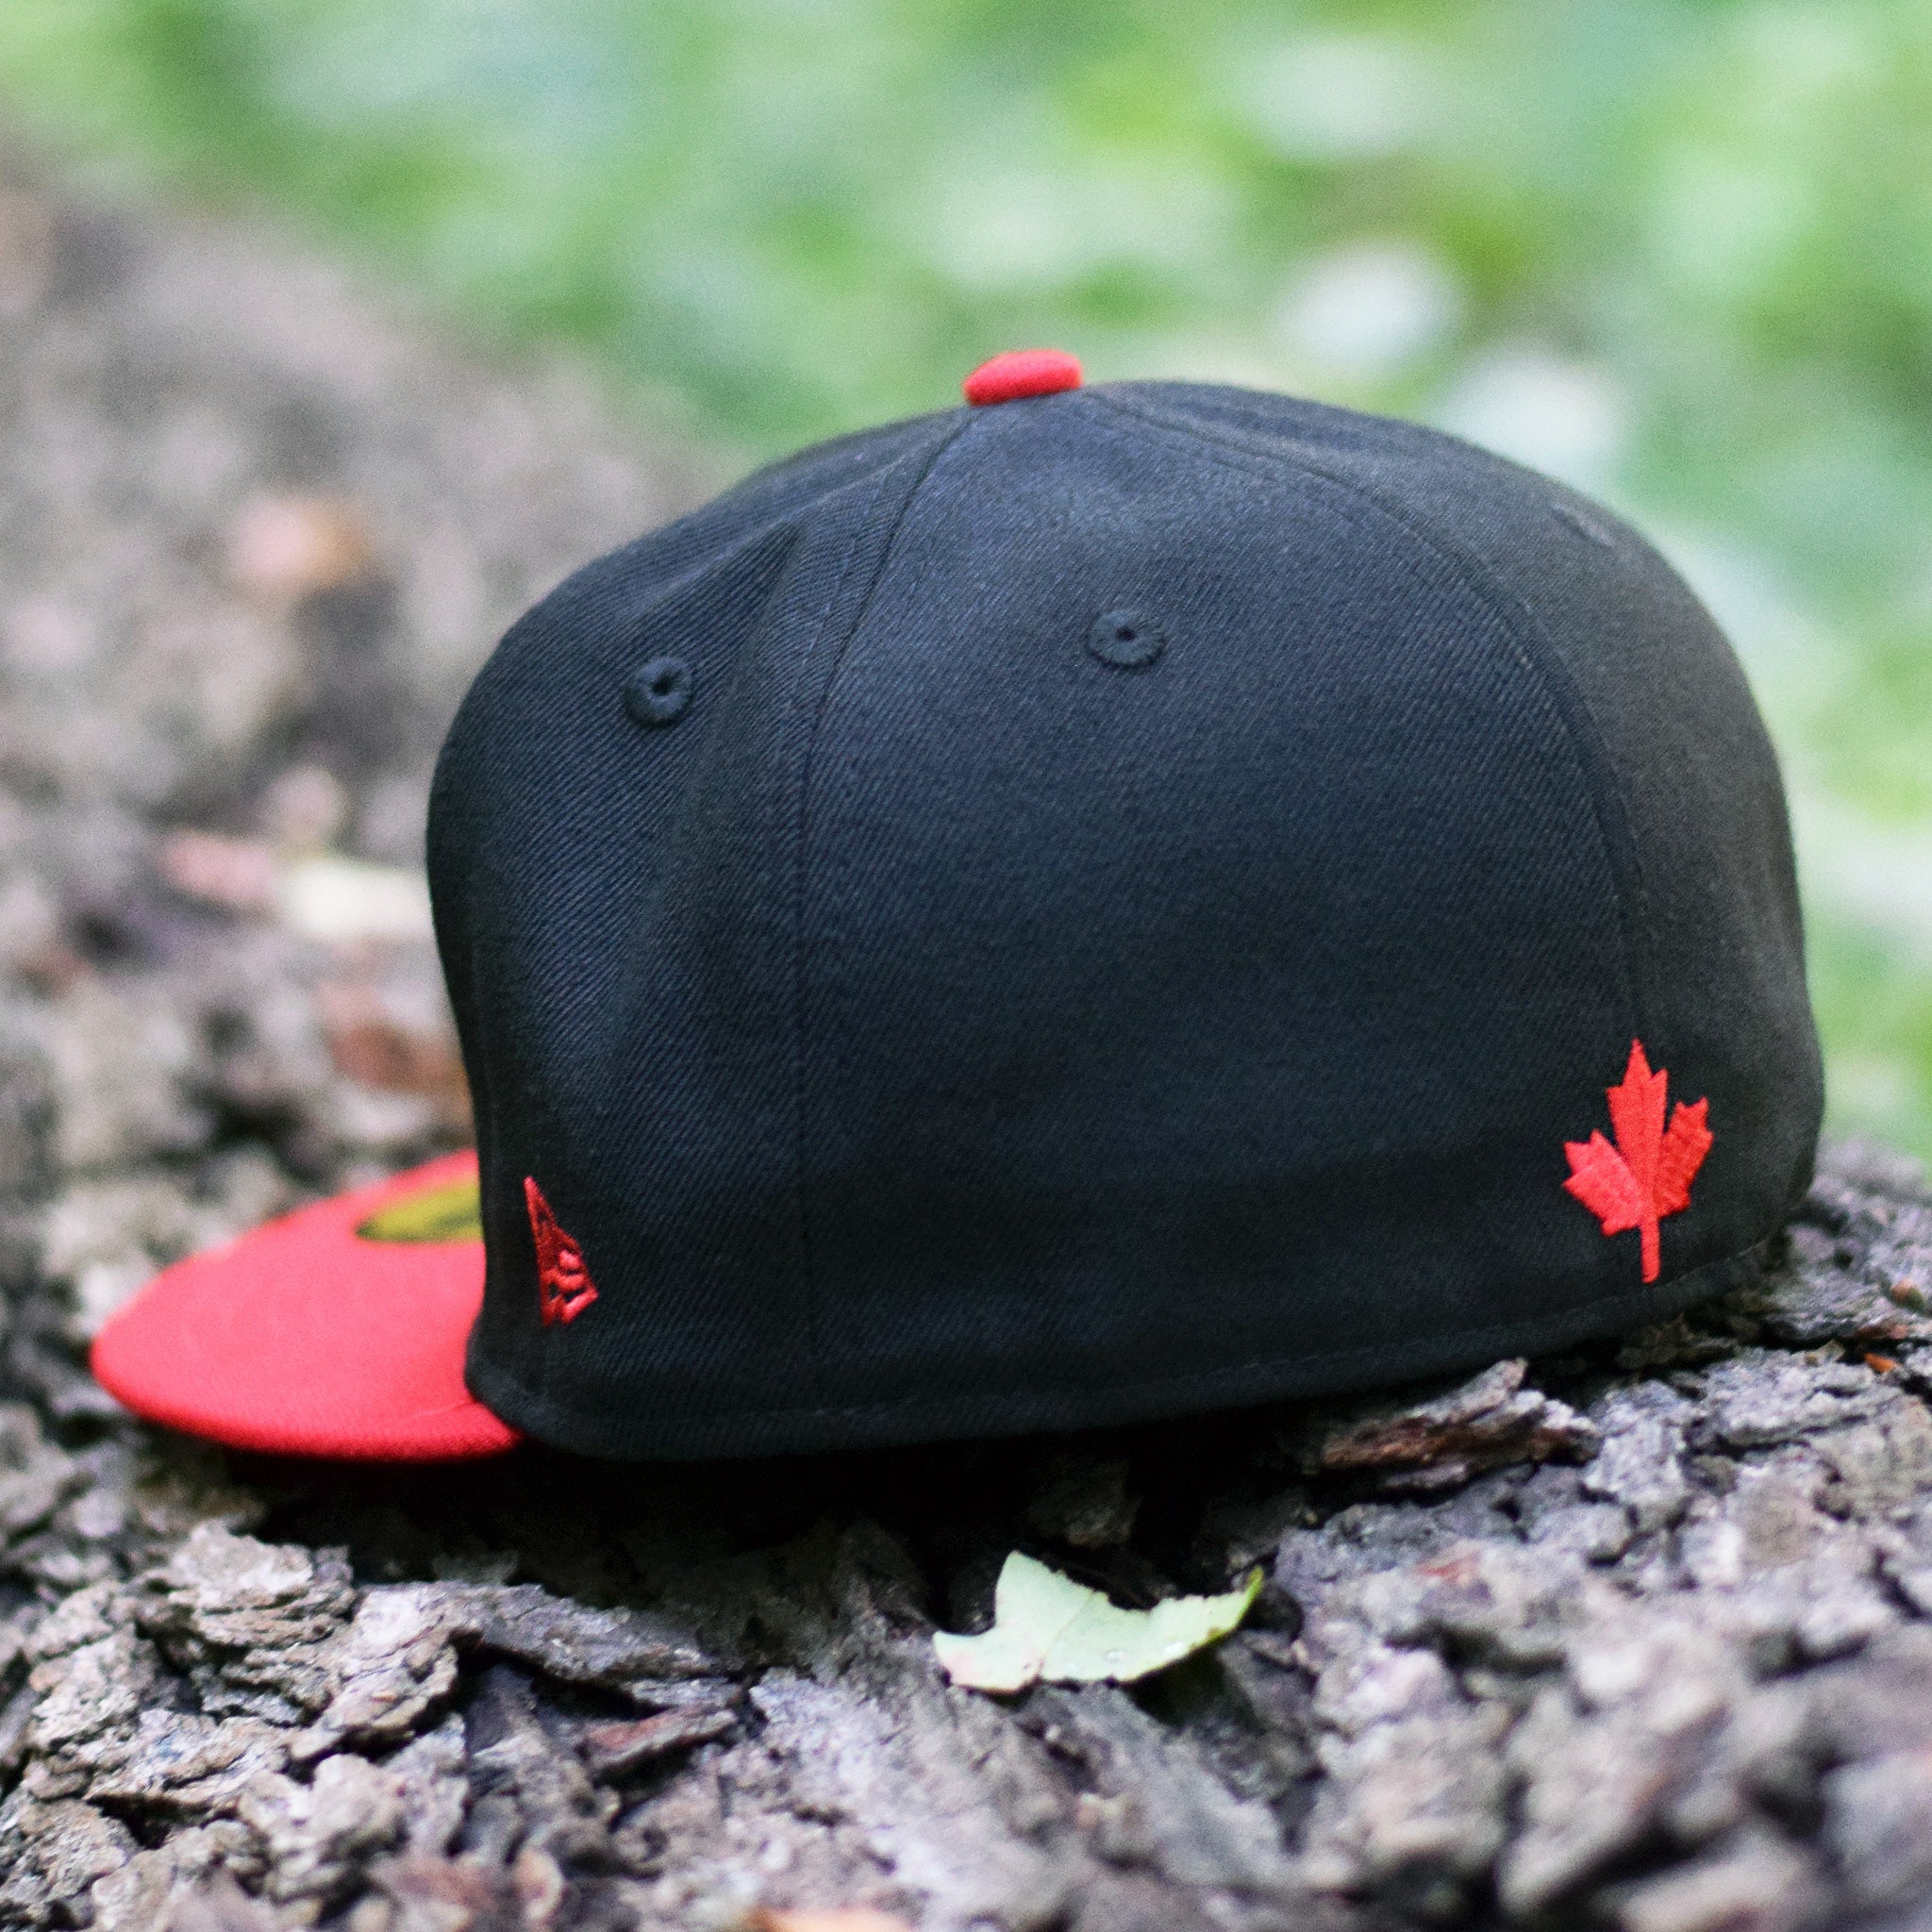 788120de0ee ... Nobe North - Bear Explorer Maple Leaf Black   Red New Era 59Fifty Hat -  Back